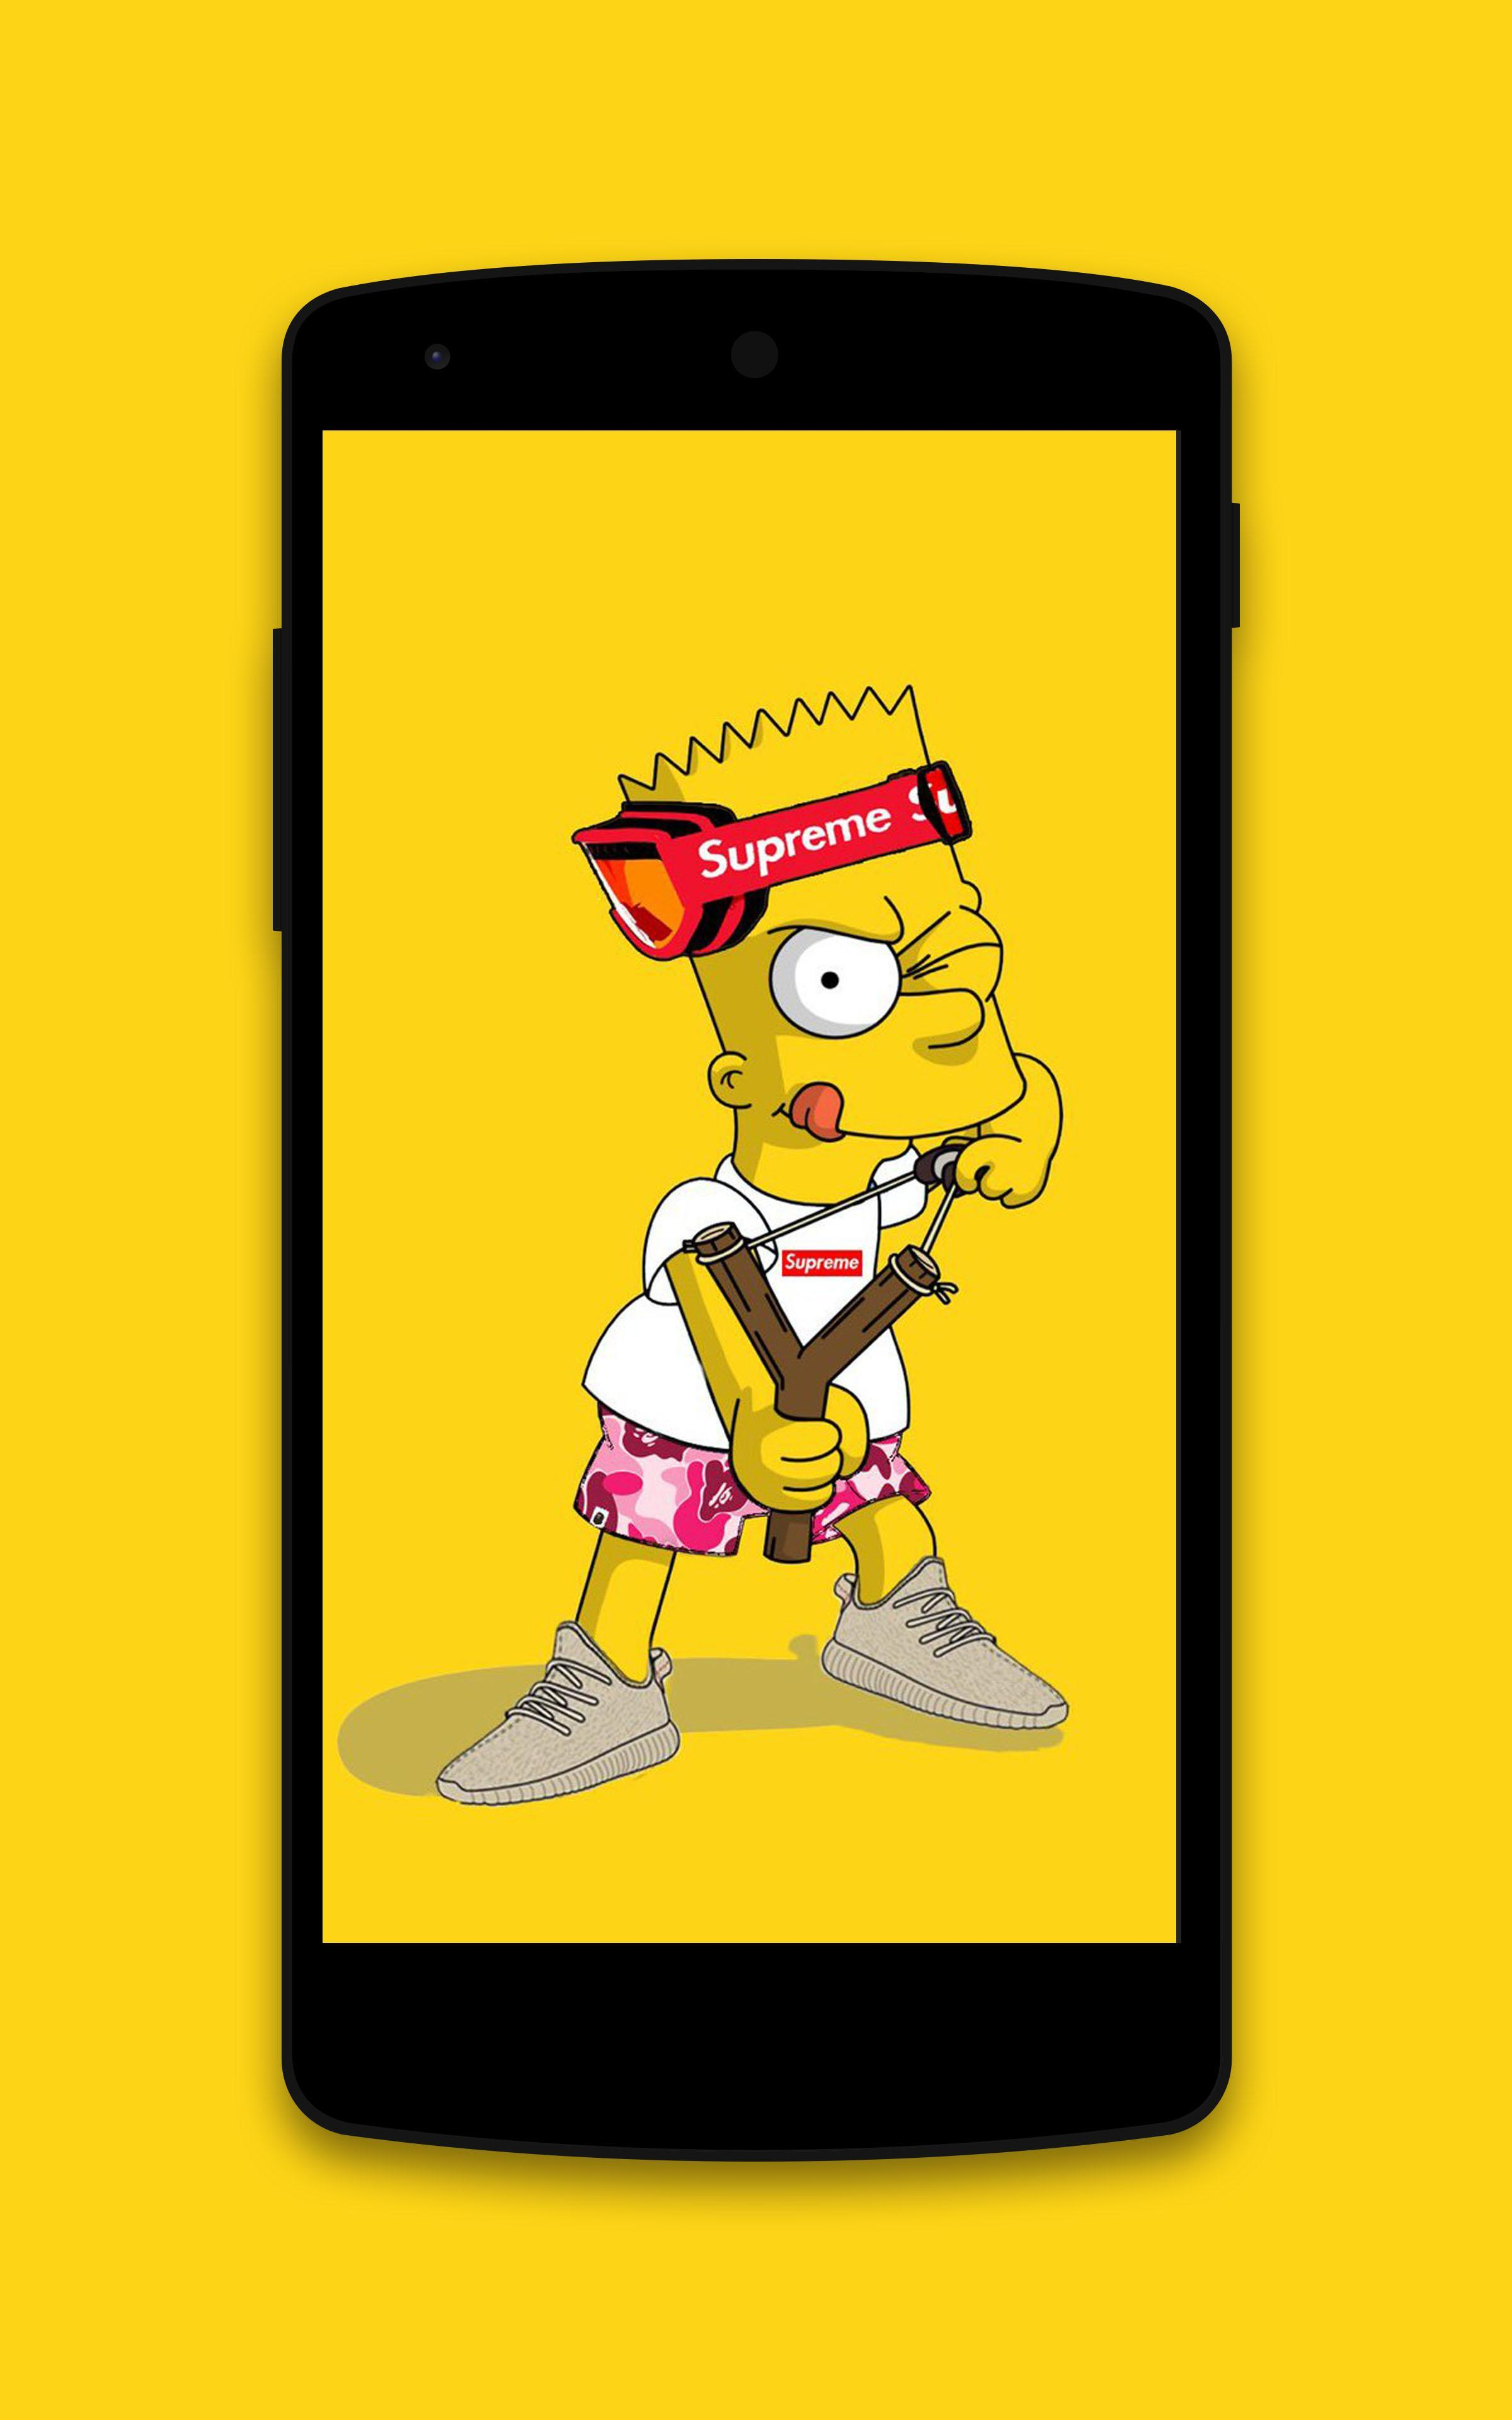 Supreme Simpsons Wallpapers Posted By Sarah Thompson